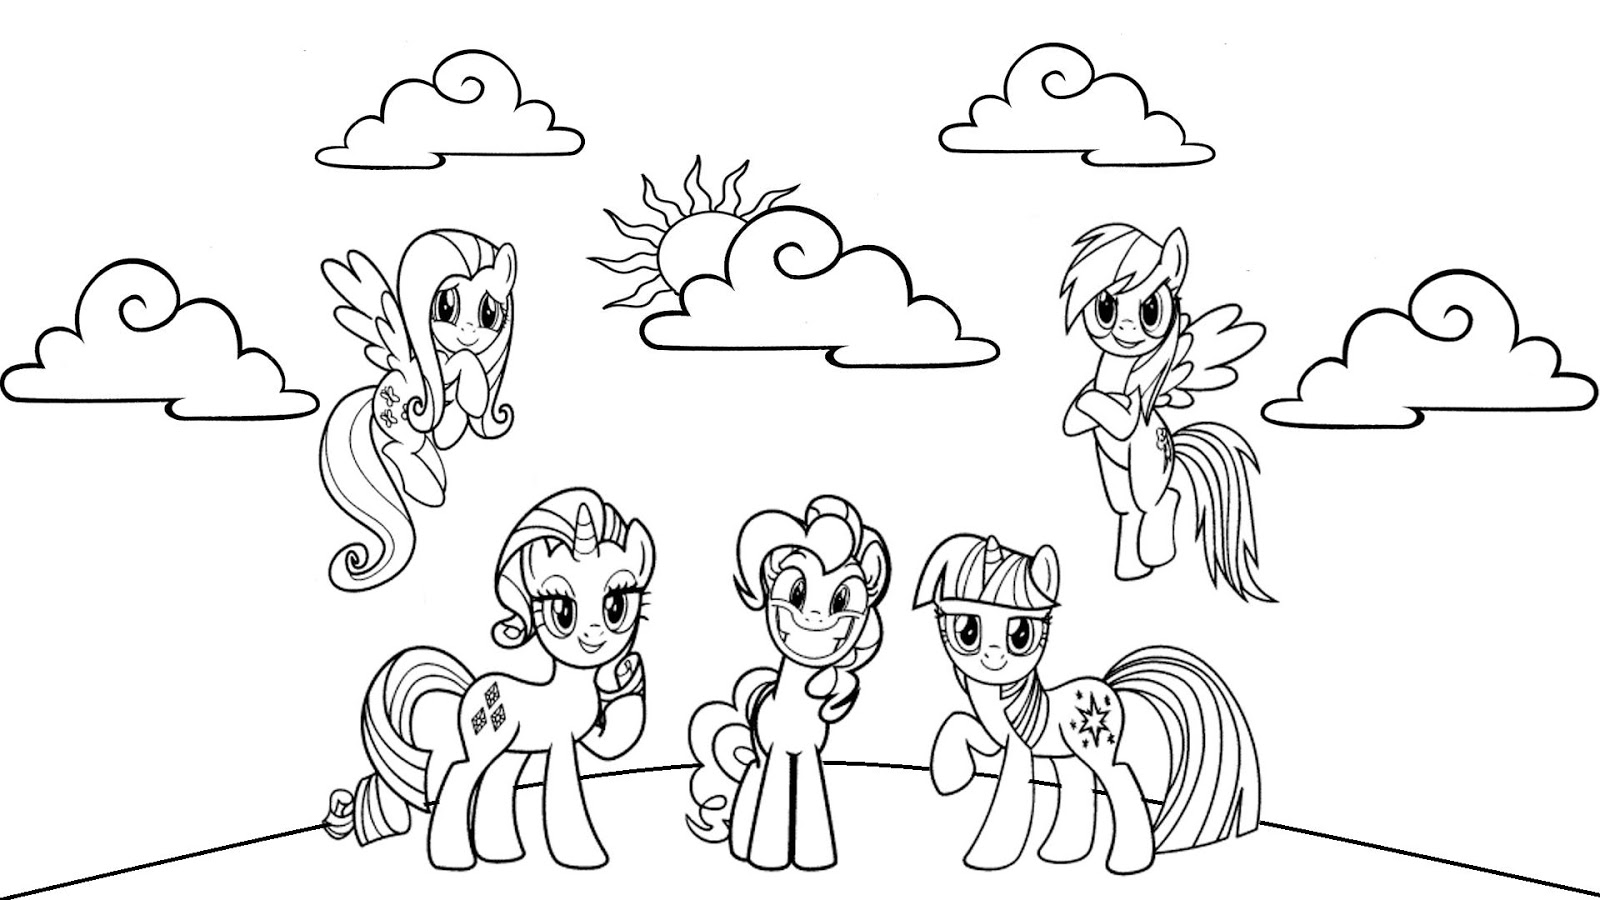 my little pony friendship is magic colouring pages my little pony friendship is magic coloring pages at colouring little pages my pony is friendship magic